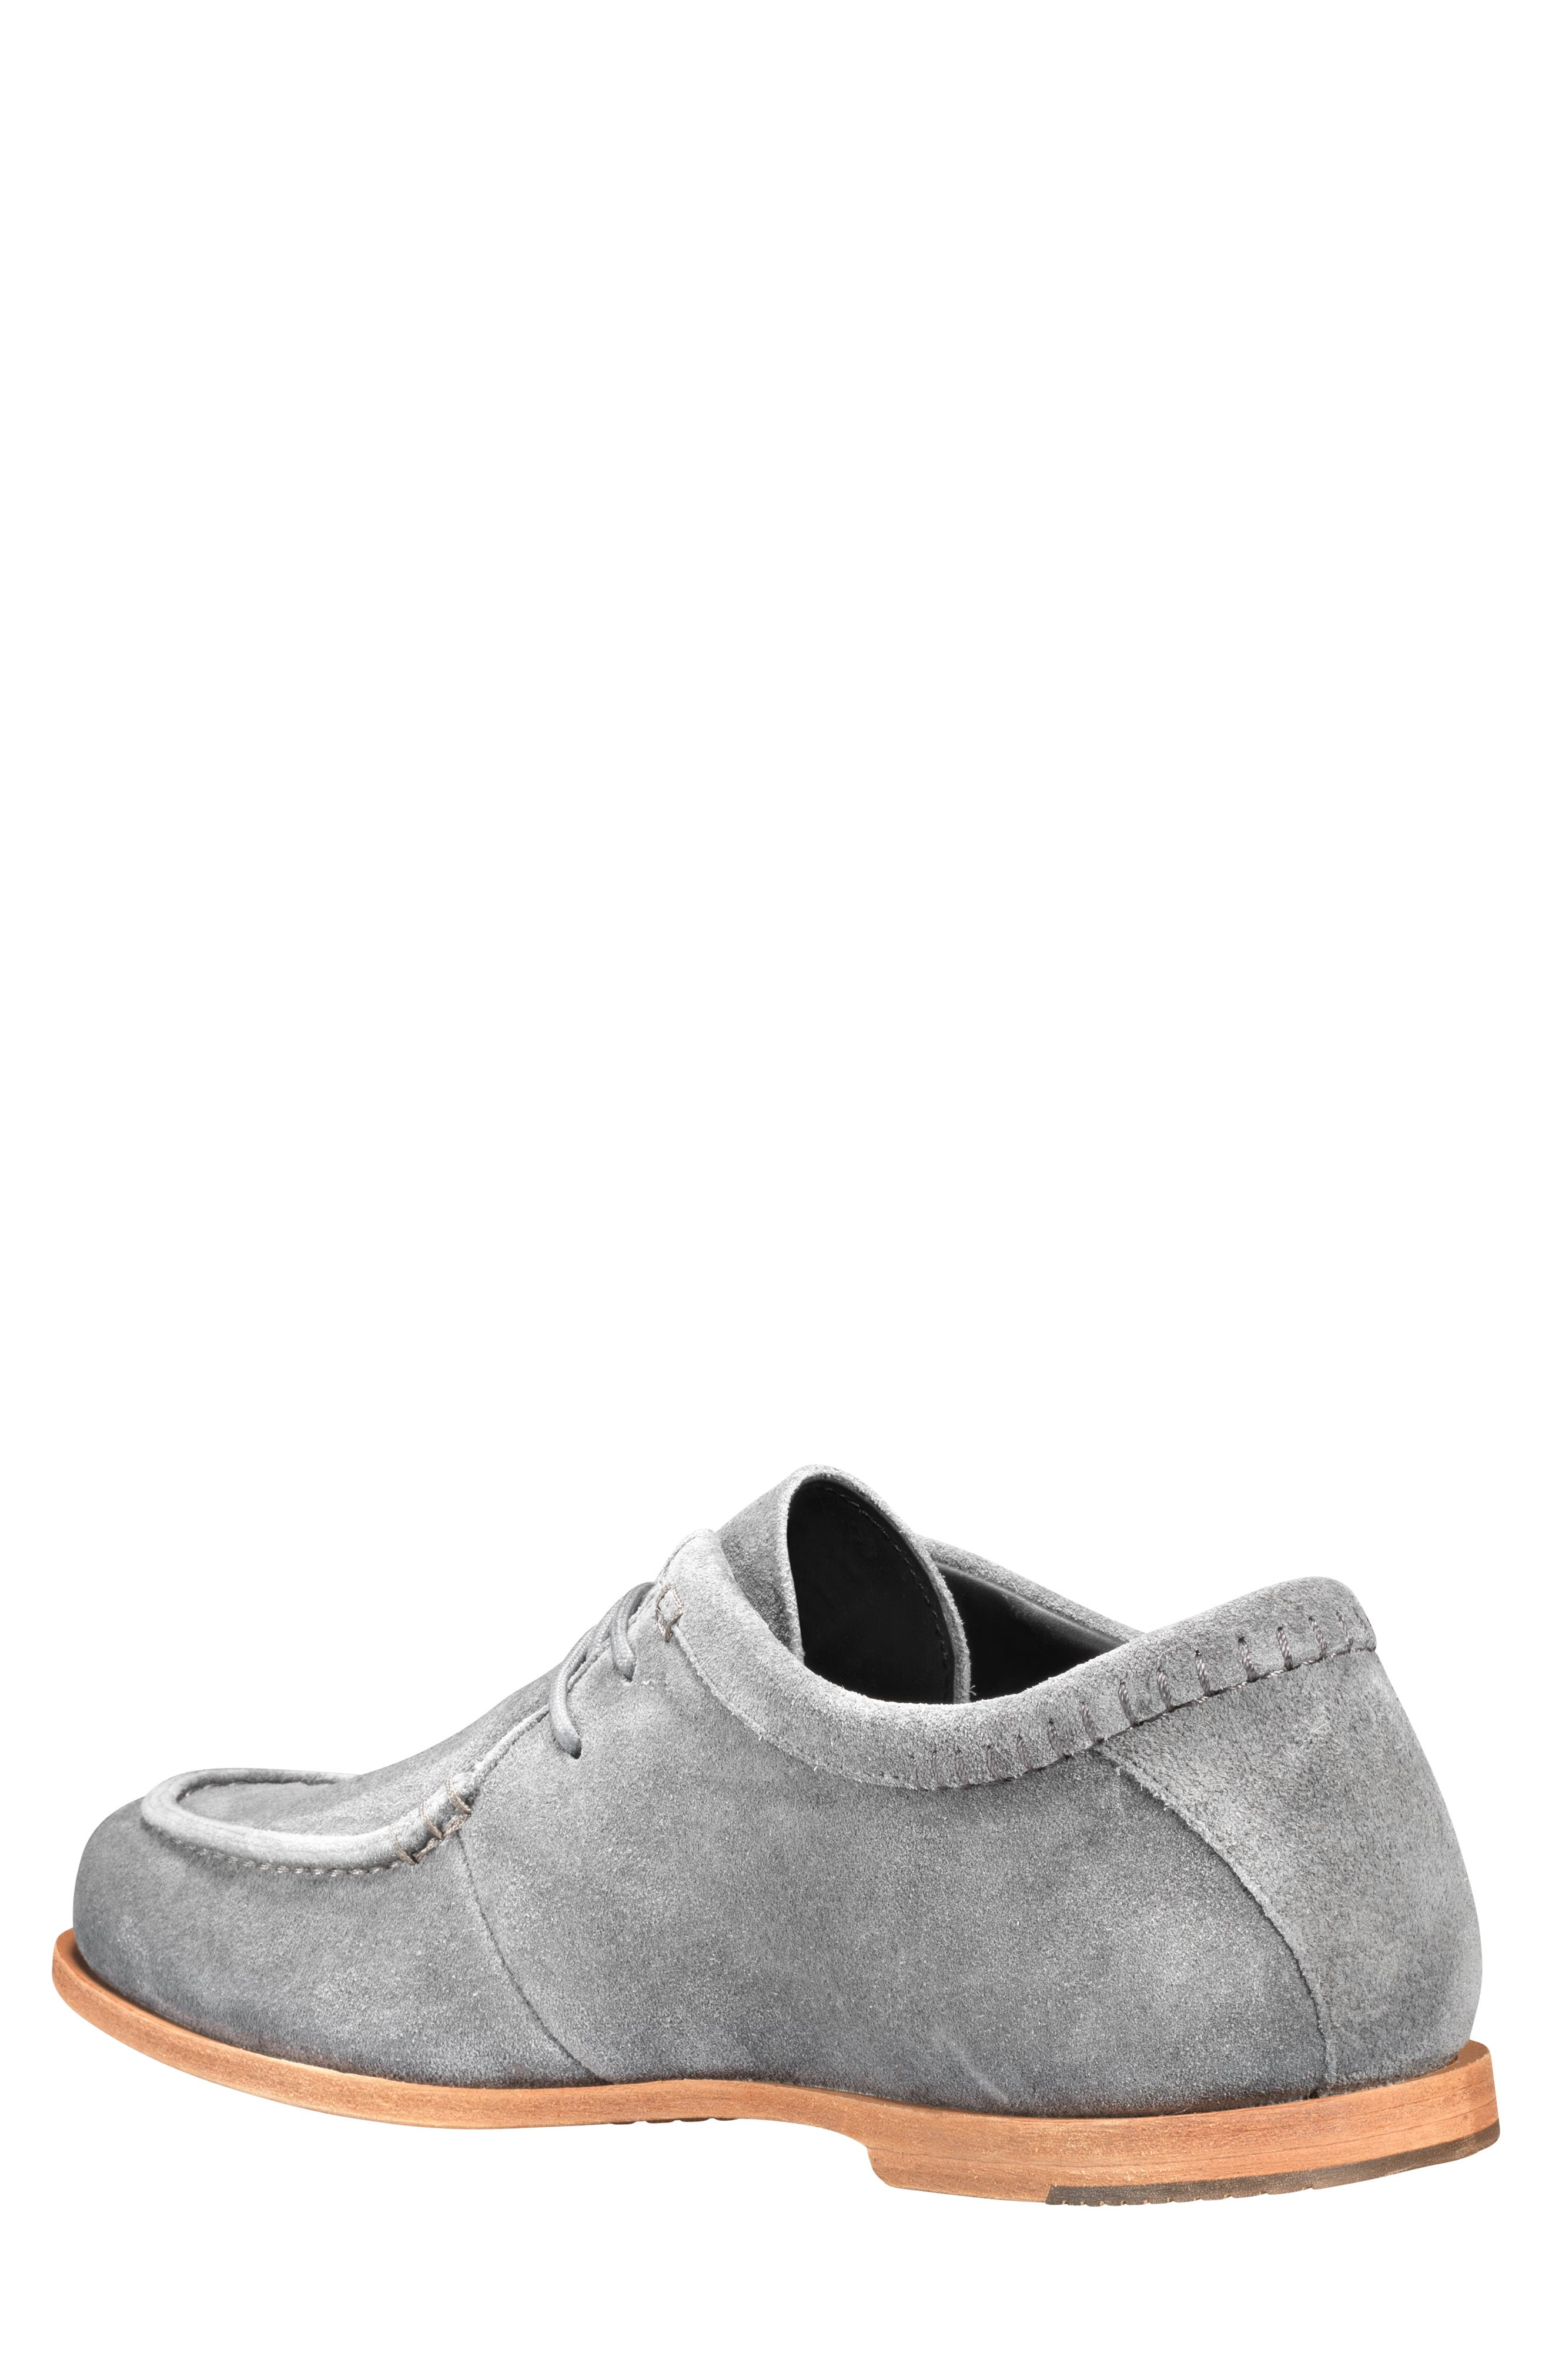 Tauk Point Moc Toe Derby,                             Alternate thumbnail 2, color,                             GREY SUEDE